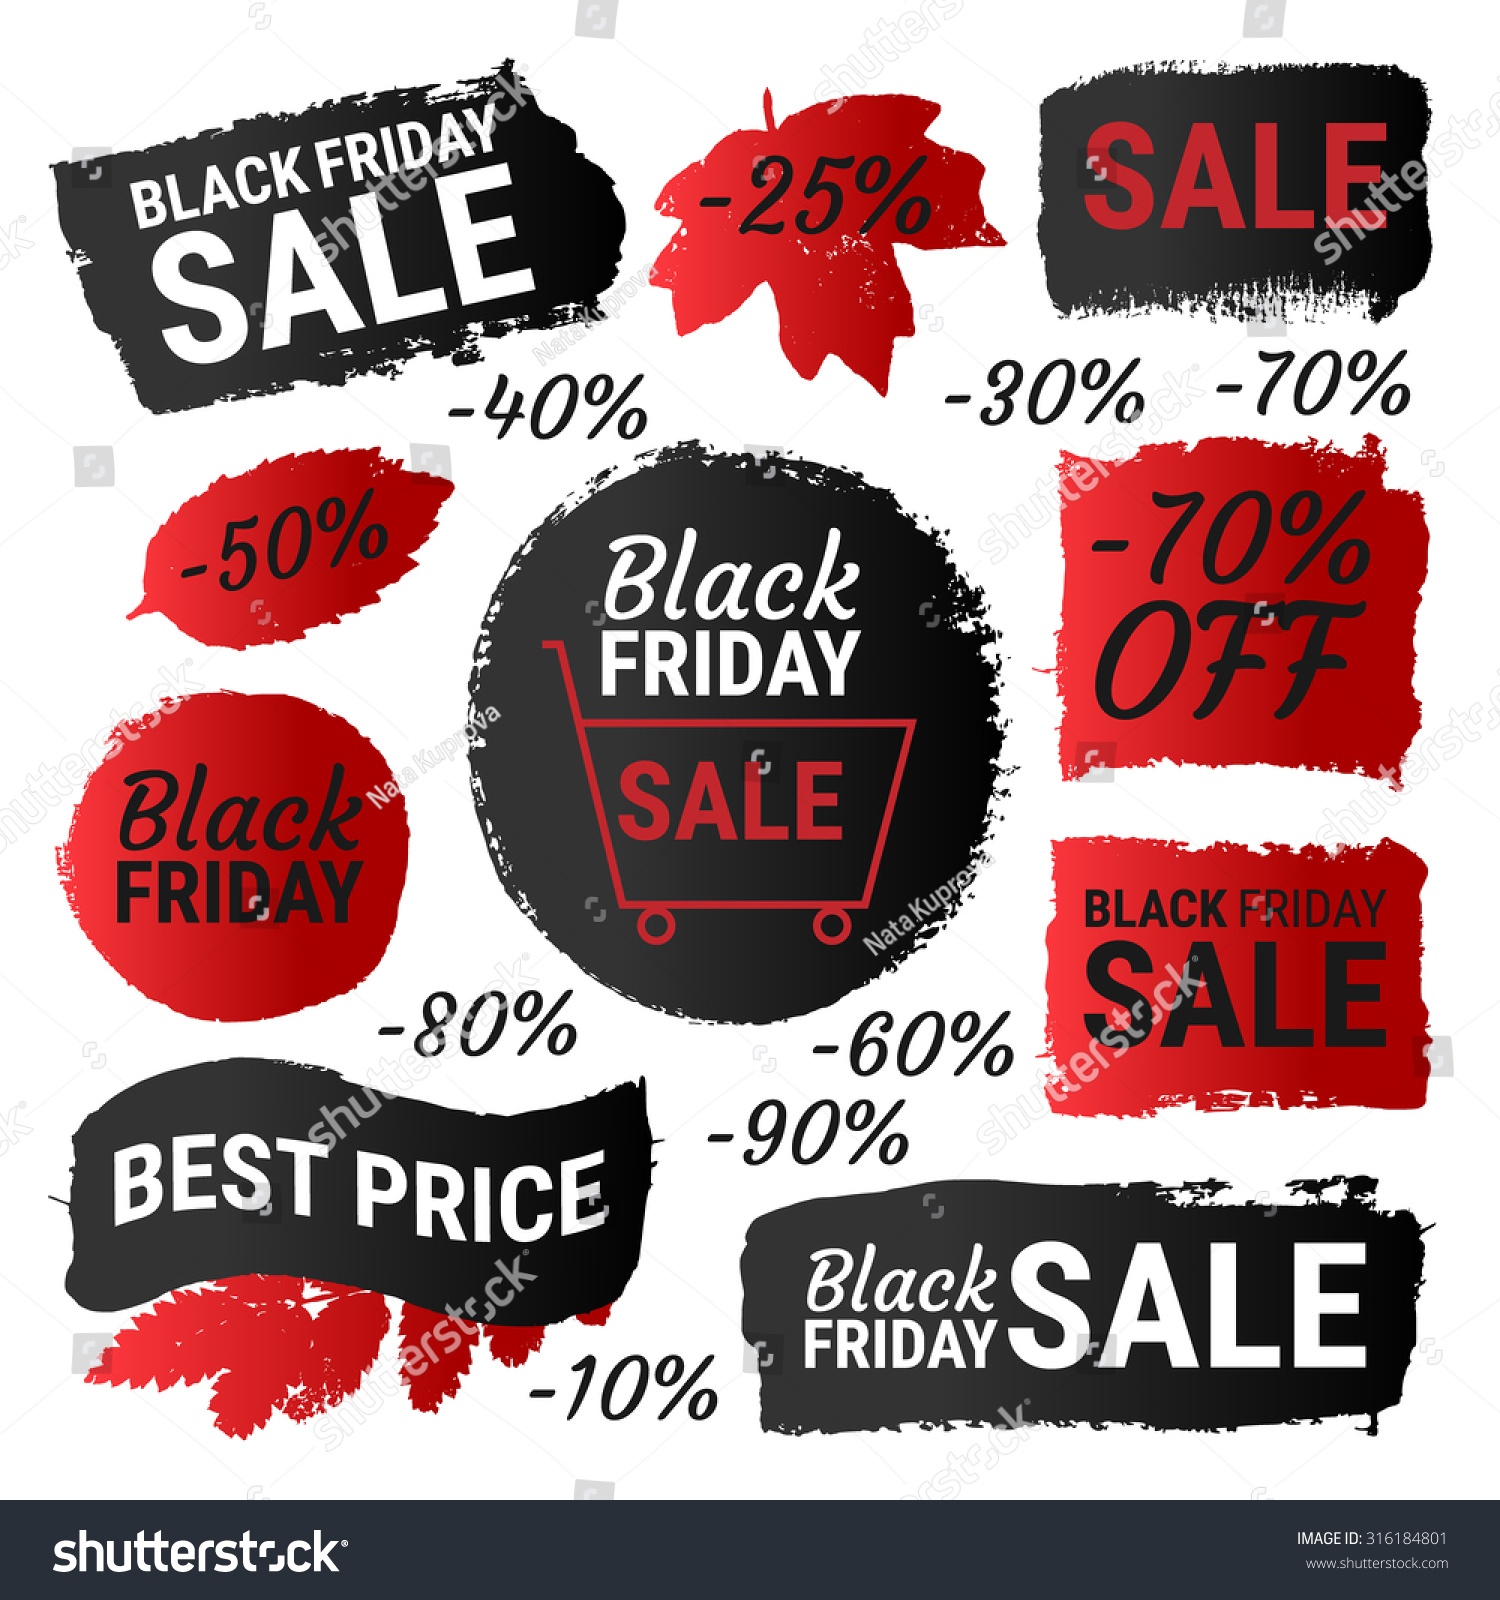 Black Friday Sale Best Price Gradient Banners Labels Round Shapes Vector Collection Of Paint